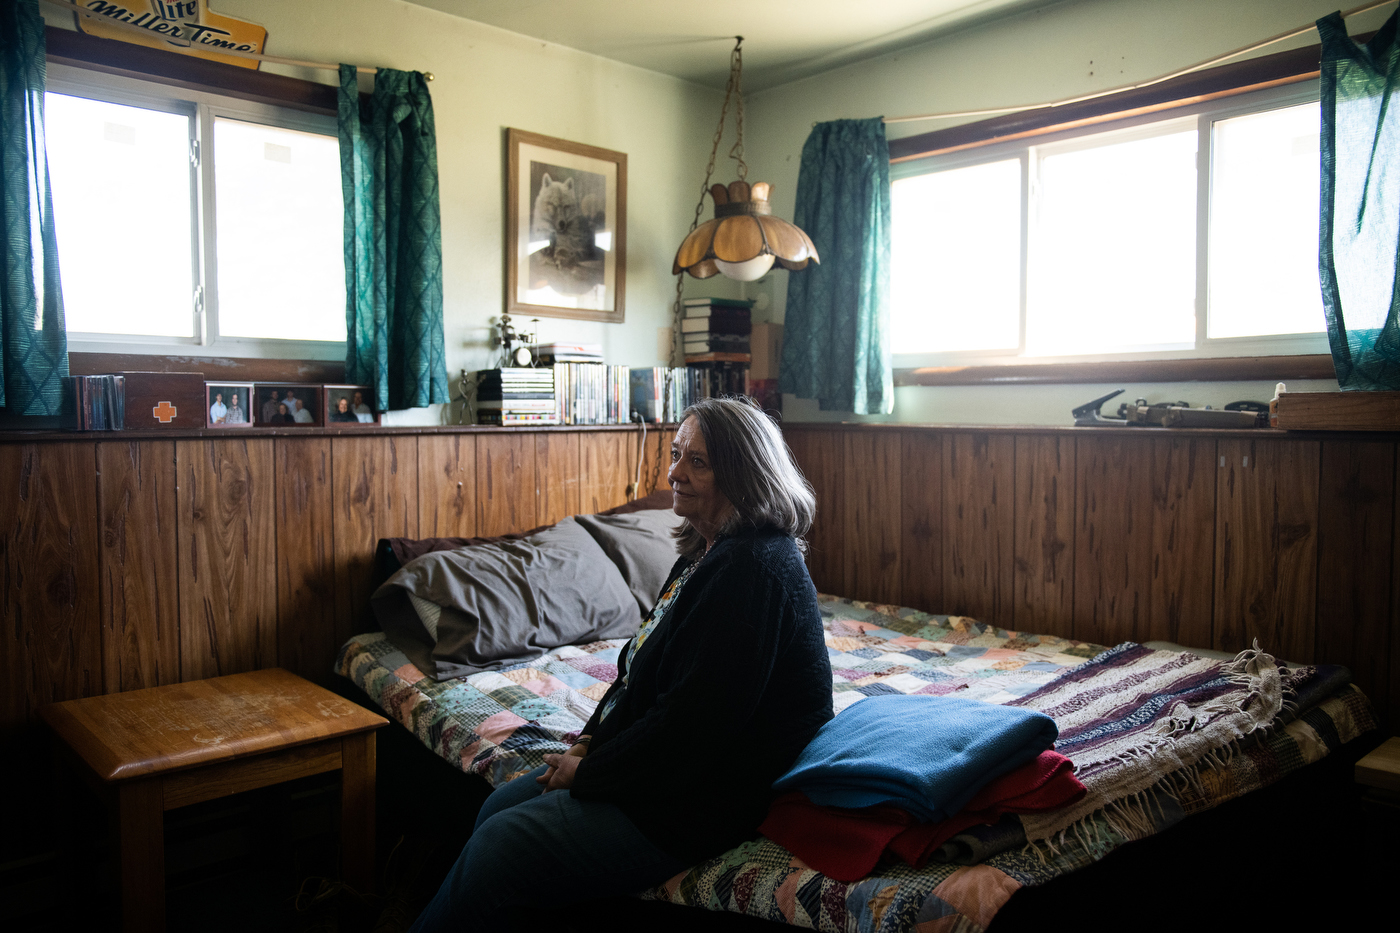 Portraits of Beth Hulm in her kitchen and the bedroom of her son Kyle Hulm in Bison, SD on October 20, 2018. Kyle Hulm, at 33 died of an assumed suicide in Dickinson, ND after a 21 year struggle with mental health issues.NGS Grant Number: GR-000040422